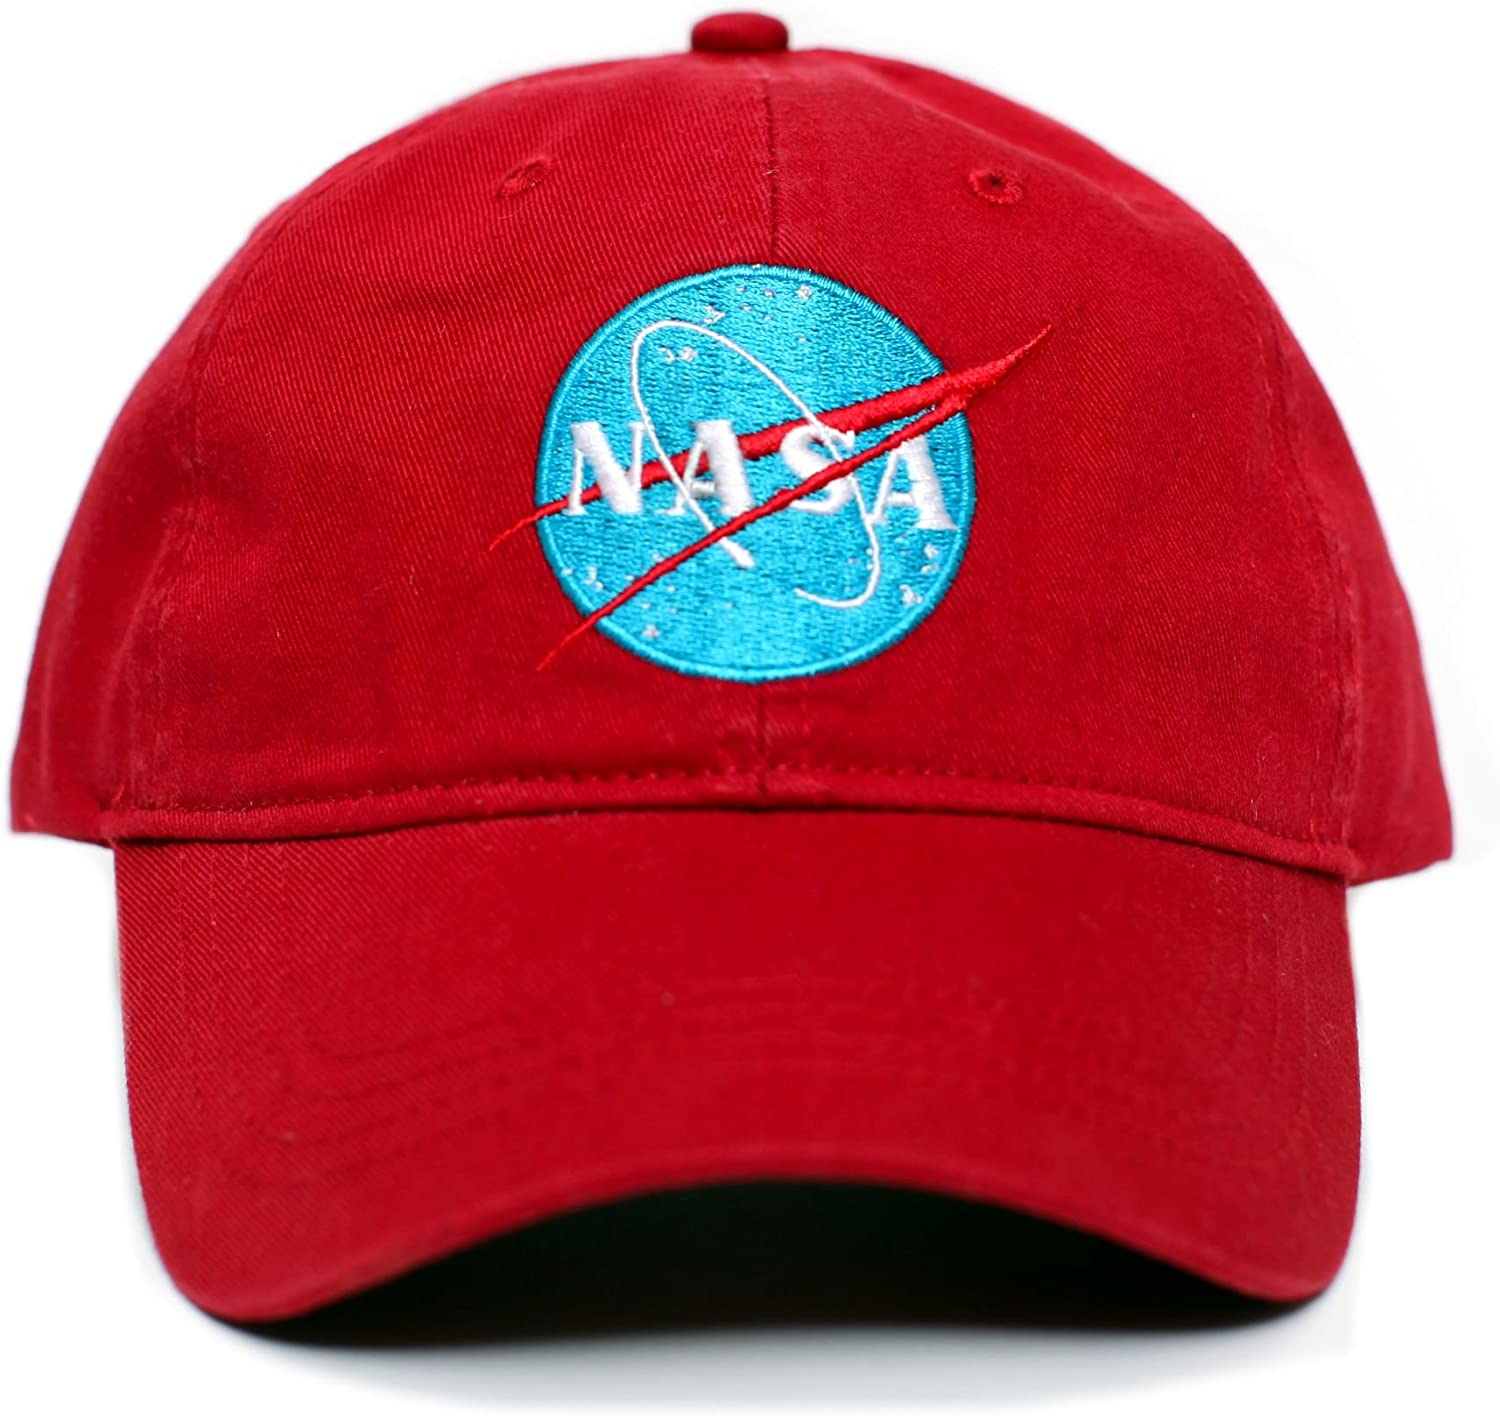 Tomorrowland NASA Embroidered Unisex Adult one-Size Dad Hat Cap Red